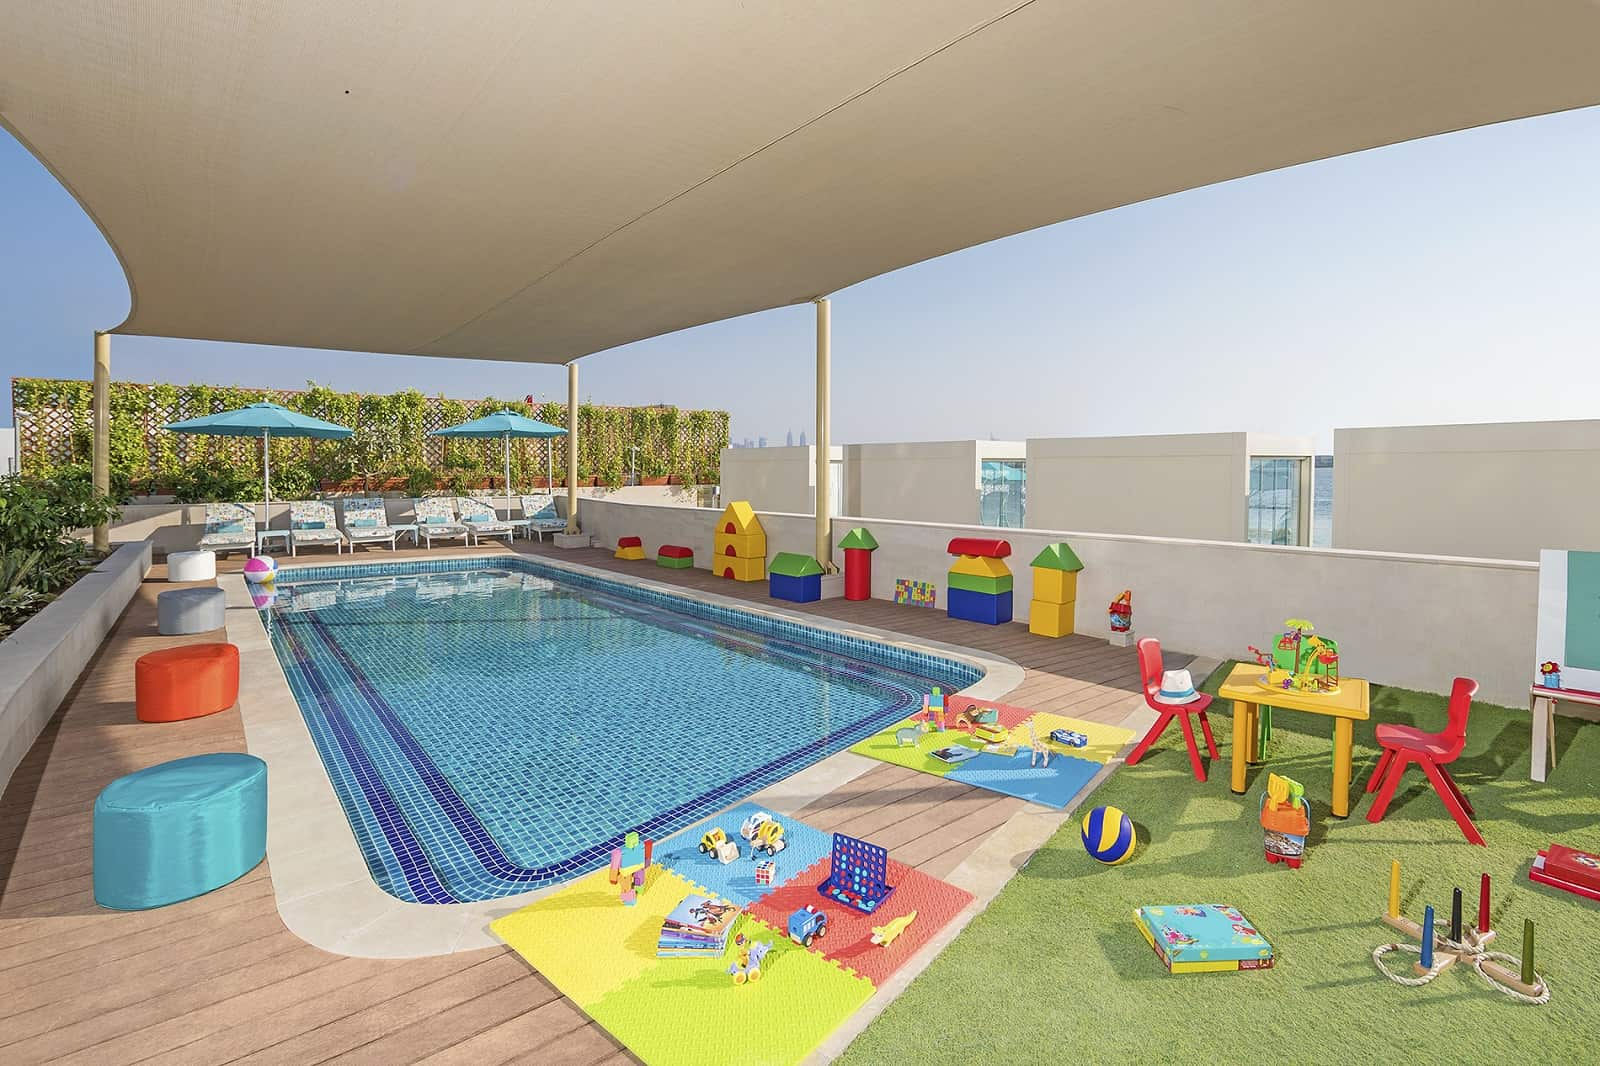 "{""id"":68,""facility_id"":35,""lang_id"":1,""hotel_id"":201000003,""name"":""RAYYA KIDS' CLUB"",""slug"":""rayya-kids-club"",""description"":""<p>A fun and exciting environment for our younger guests, supervised by certified caregivers, with dedicated fit and relax-zones, Rayya Kids&rsquo; Club offers a wide variety of engaging activities and workshops to keep children aged four to twelve years old entertained throughout the day. Rayya Kids&rsquo; Club also hosts special healthy summer camps, weight management programmes and other events to introduce children to the benefits of healthy living.<\/p>"",""sort"":4,""status"":1,""created_at"":""2019-11-13 11:22:04"",""updated_at"":""2019-11-14 13:46:58"",""deleted_at"":null,""image_slider"":{""id"":1209,""lang_id"":1,""image_sliderable_id"":68,""image_sliderable_type"":""App\\HotelFacility"",""image_slider"":""uploads\/image-slider\/840389ffa3a045775db88230a7b5bf8f1574058033.jpg"",""name"":null,""sub_name"":null,""content"":null,""status"":1,""created_at"":""2019-11-18 06:20:33"",""updated_at"":""2019-11-18 06:30:13"",""sort"":1,""is_mobile"":0}}-slider"